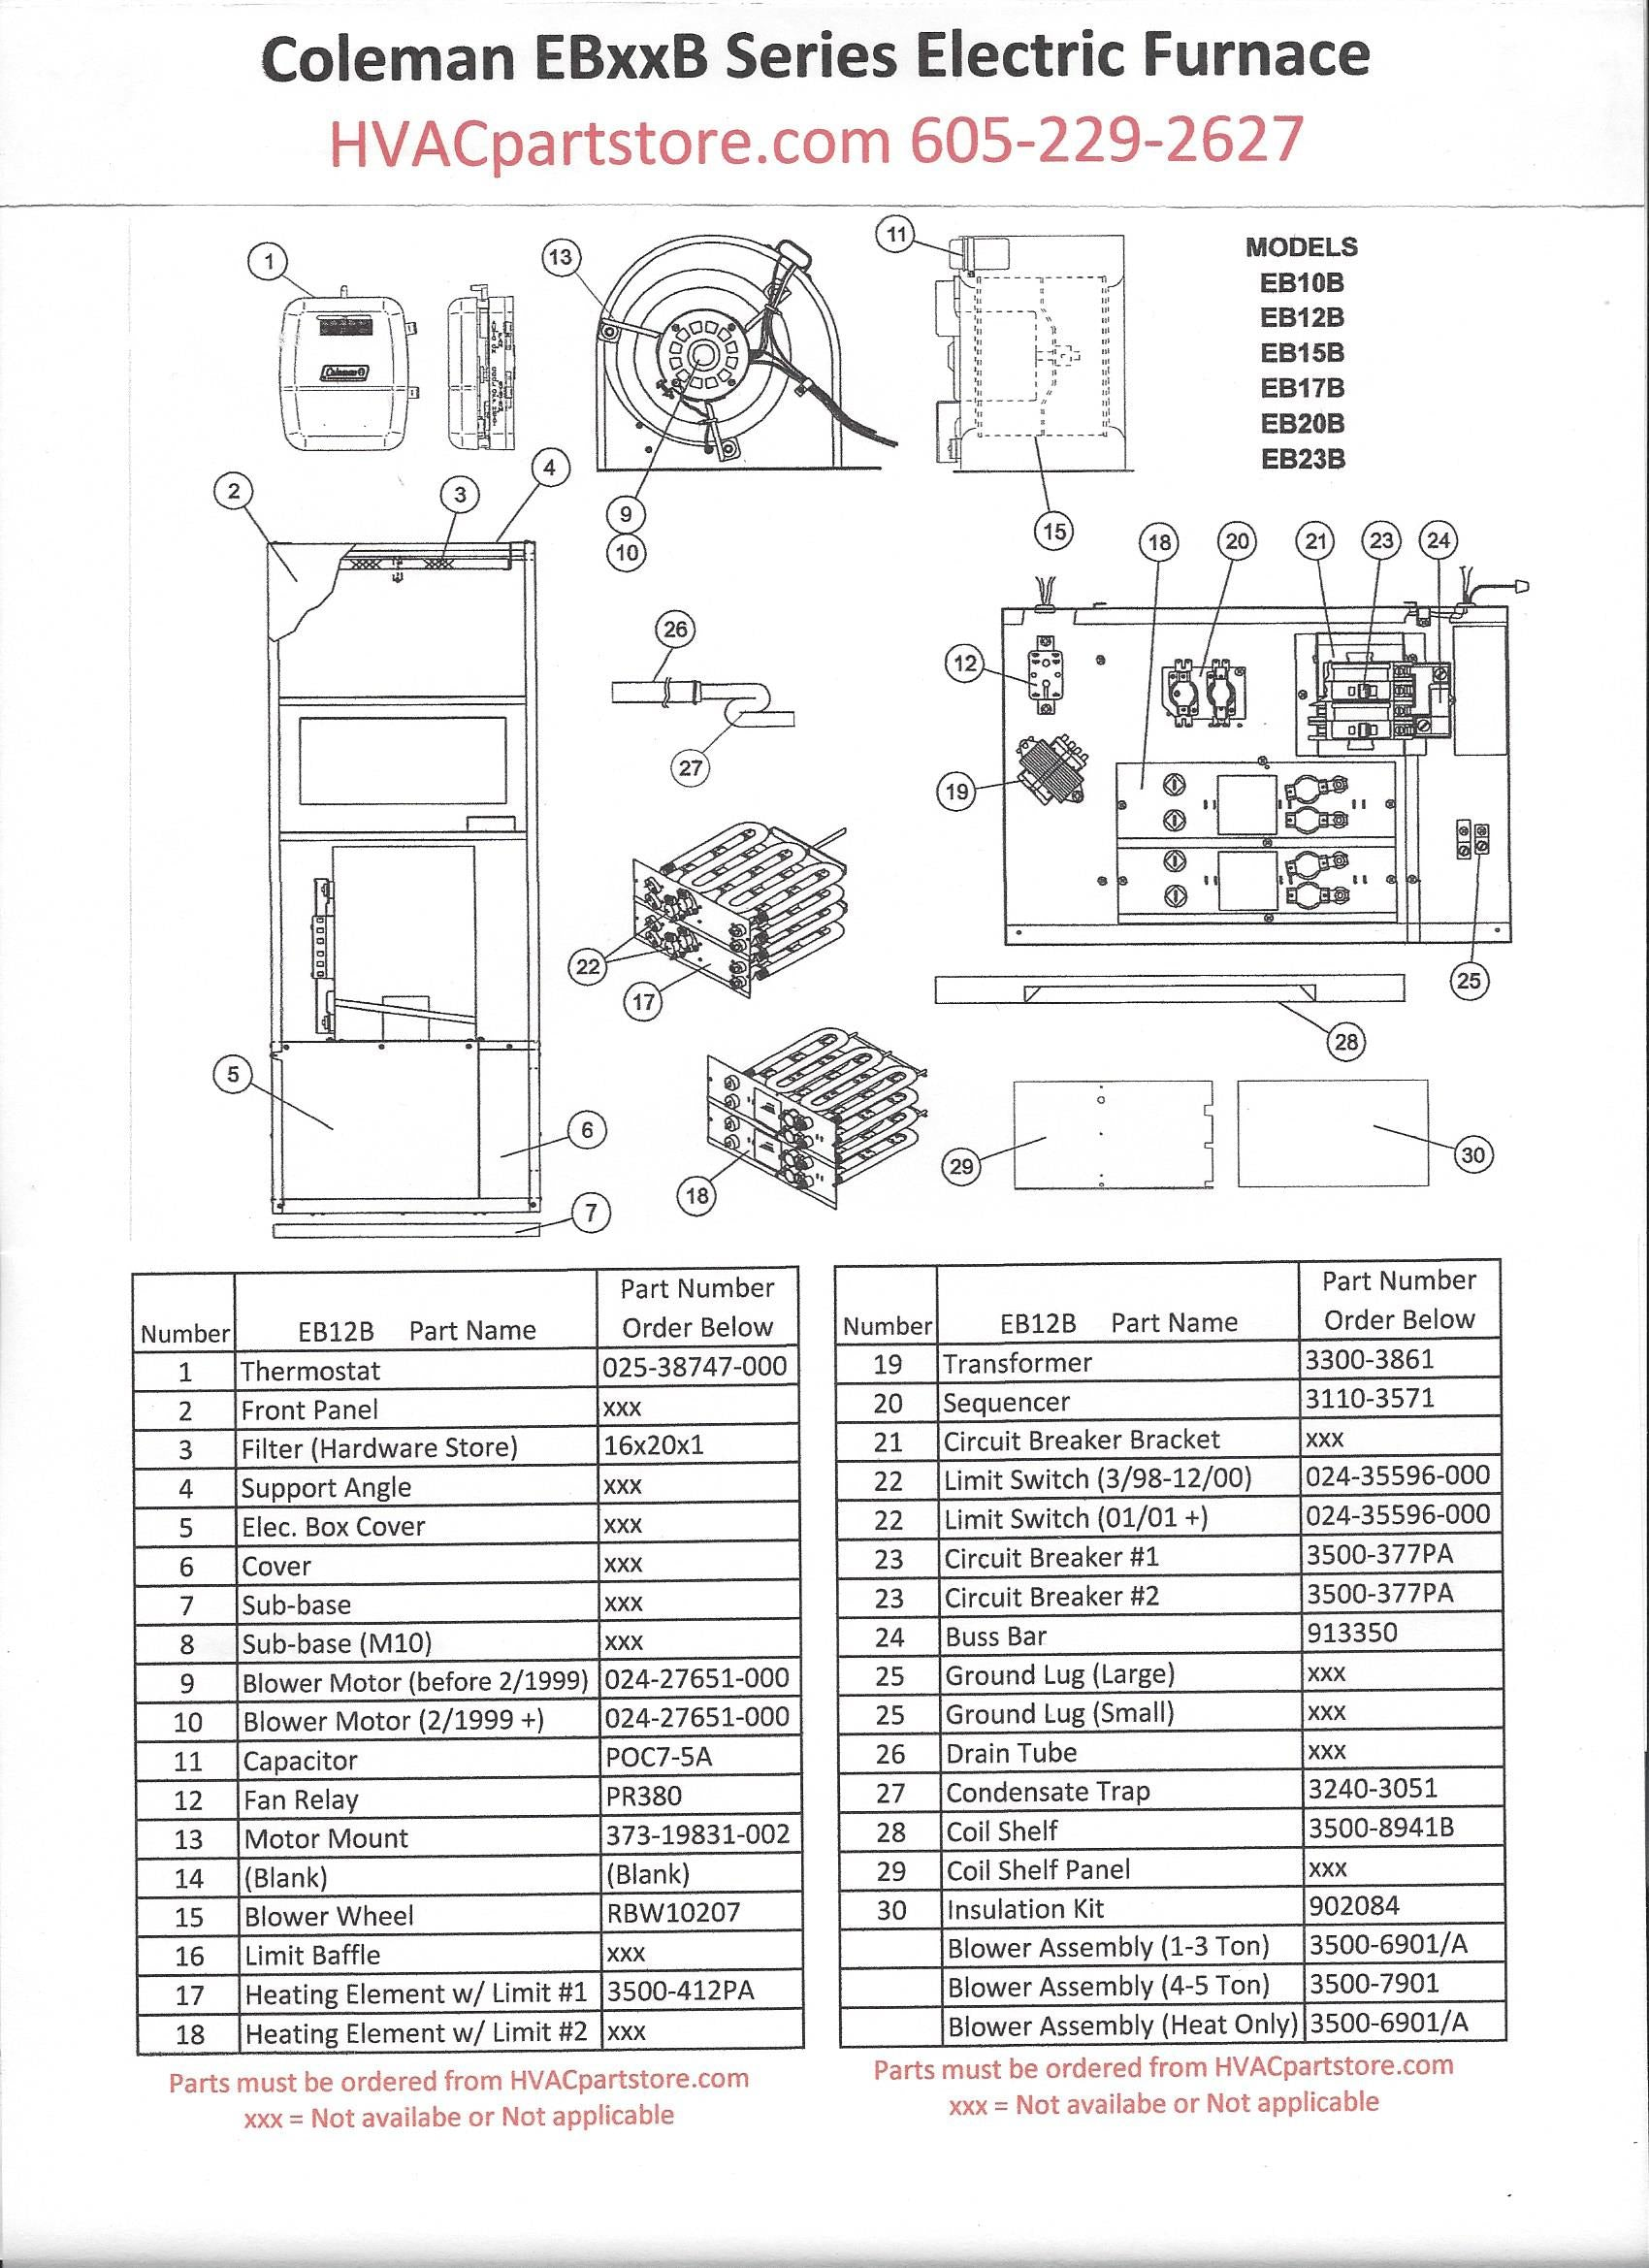 wiring diagram coleman electric furnace with Eb12b Wiring on 7970 856 Coleman Gas Furnace Parts likewise E moreover Furnaces also Eb20b Coleman Electric Furnace Parts additionally Go Power 30   Transfer Switch.